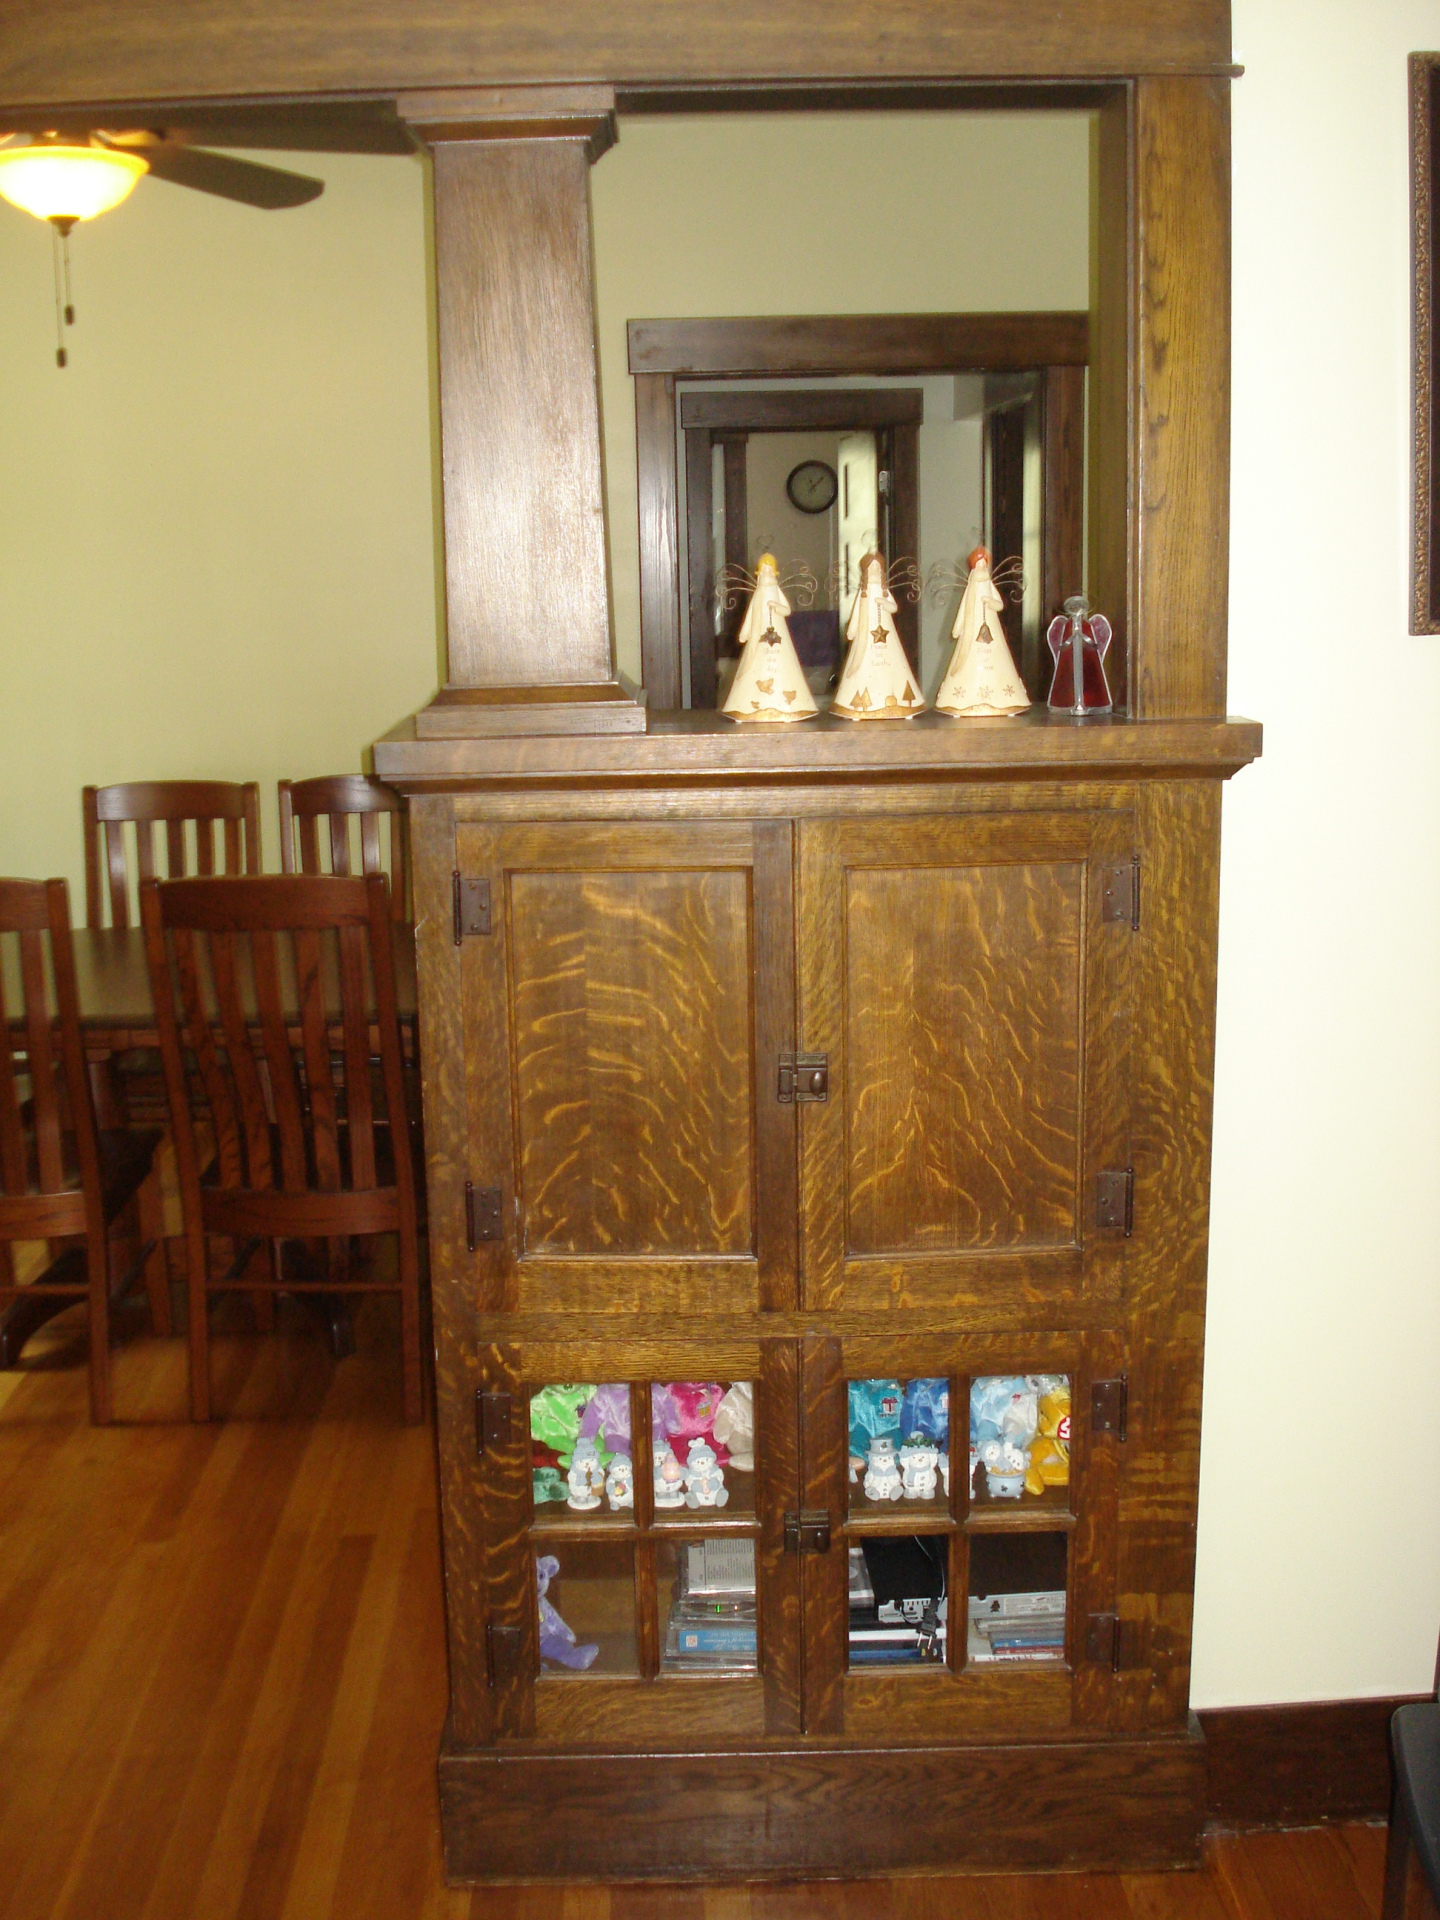 Bookcase| House for sale| Linn| Kansas